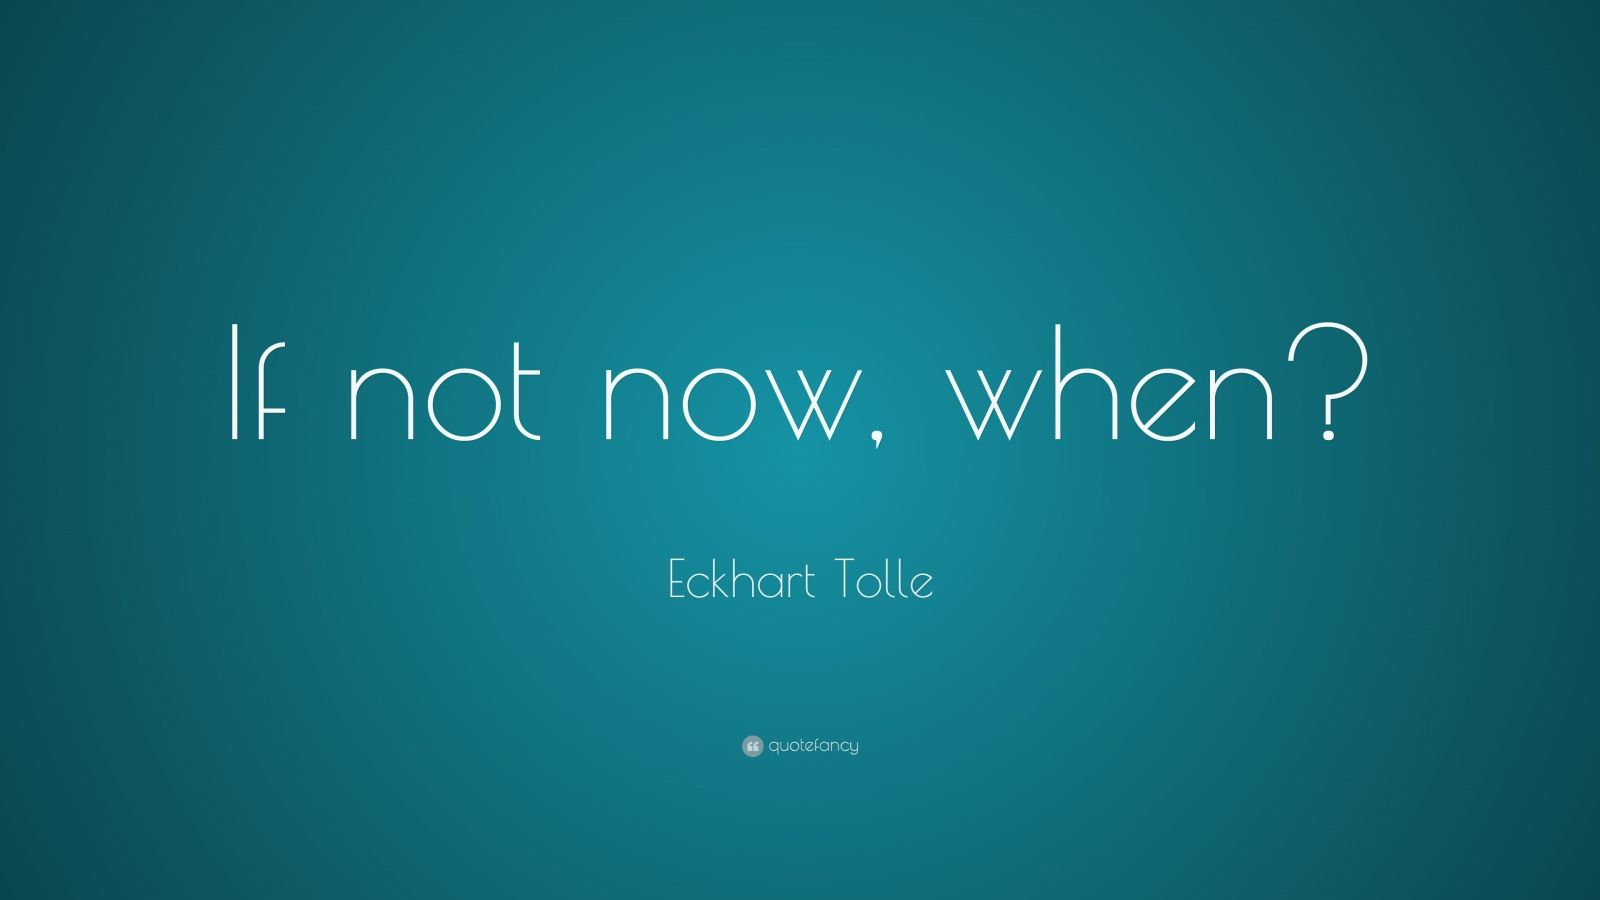 Eckhart Tolle Quotes | Eckhart Tolle Quotes 100 Wallpapers Quotefancy